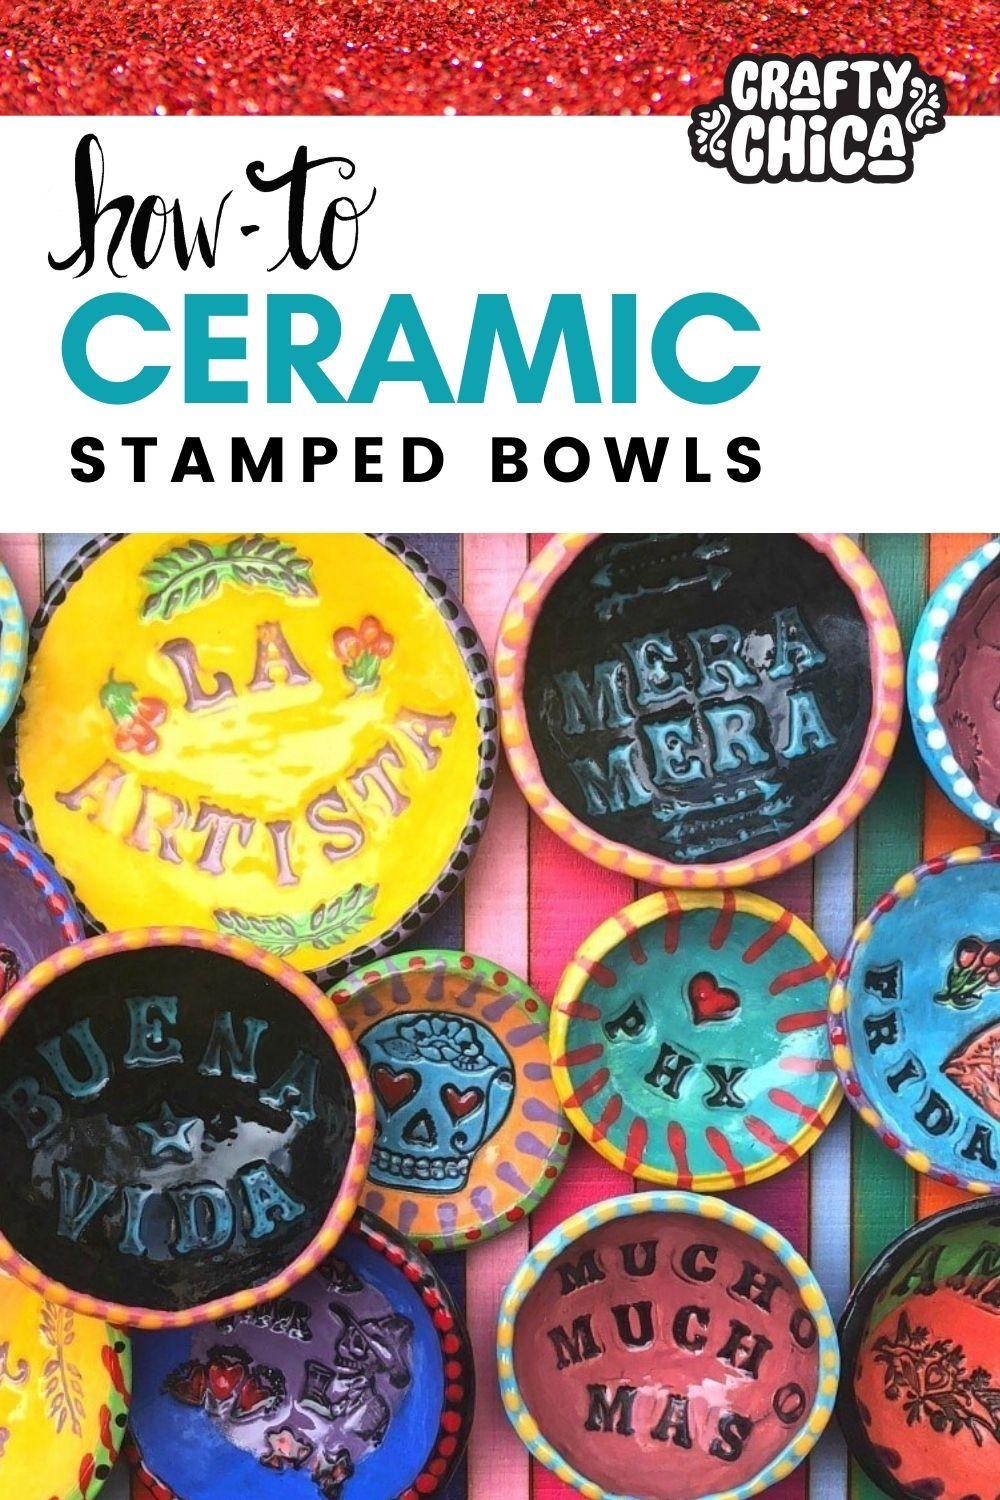 Stamped clay bowls by The Crafty Chica